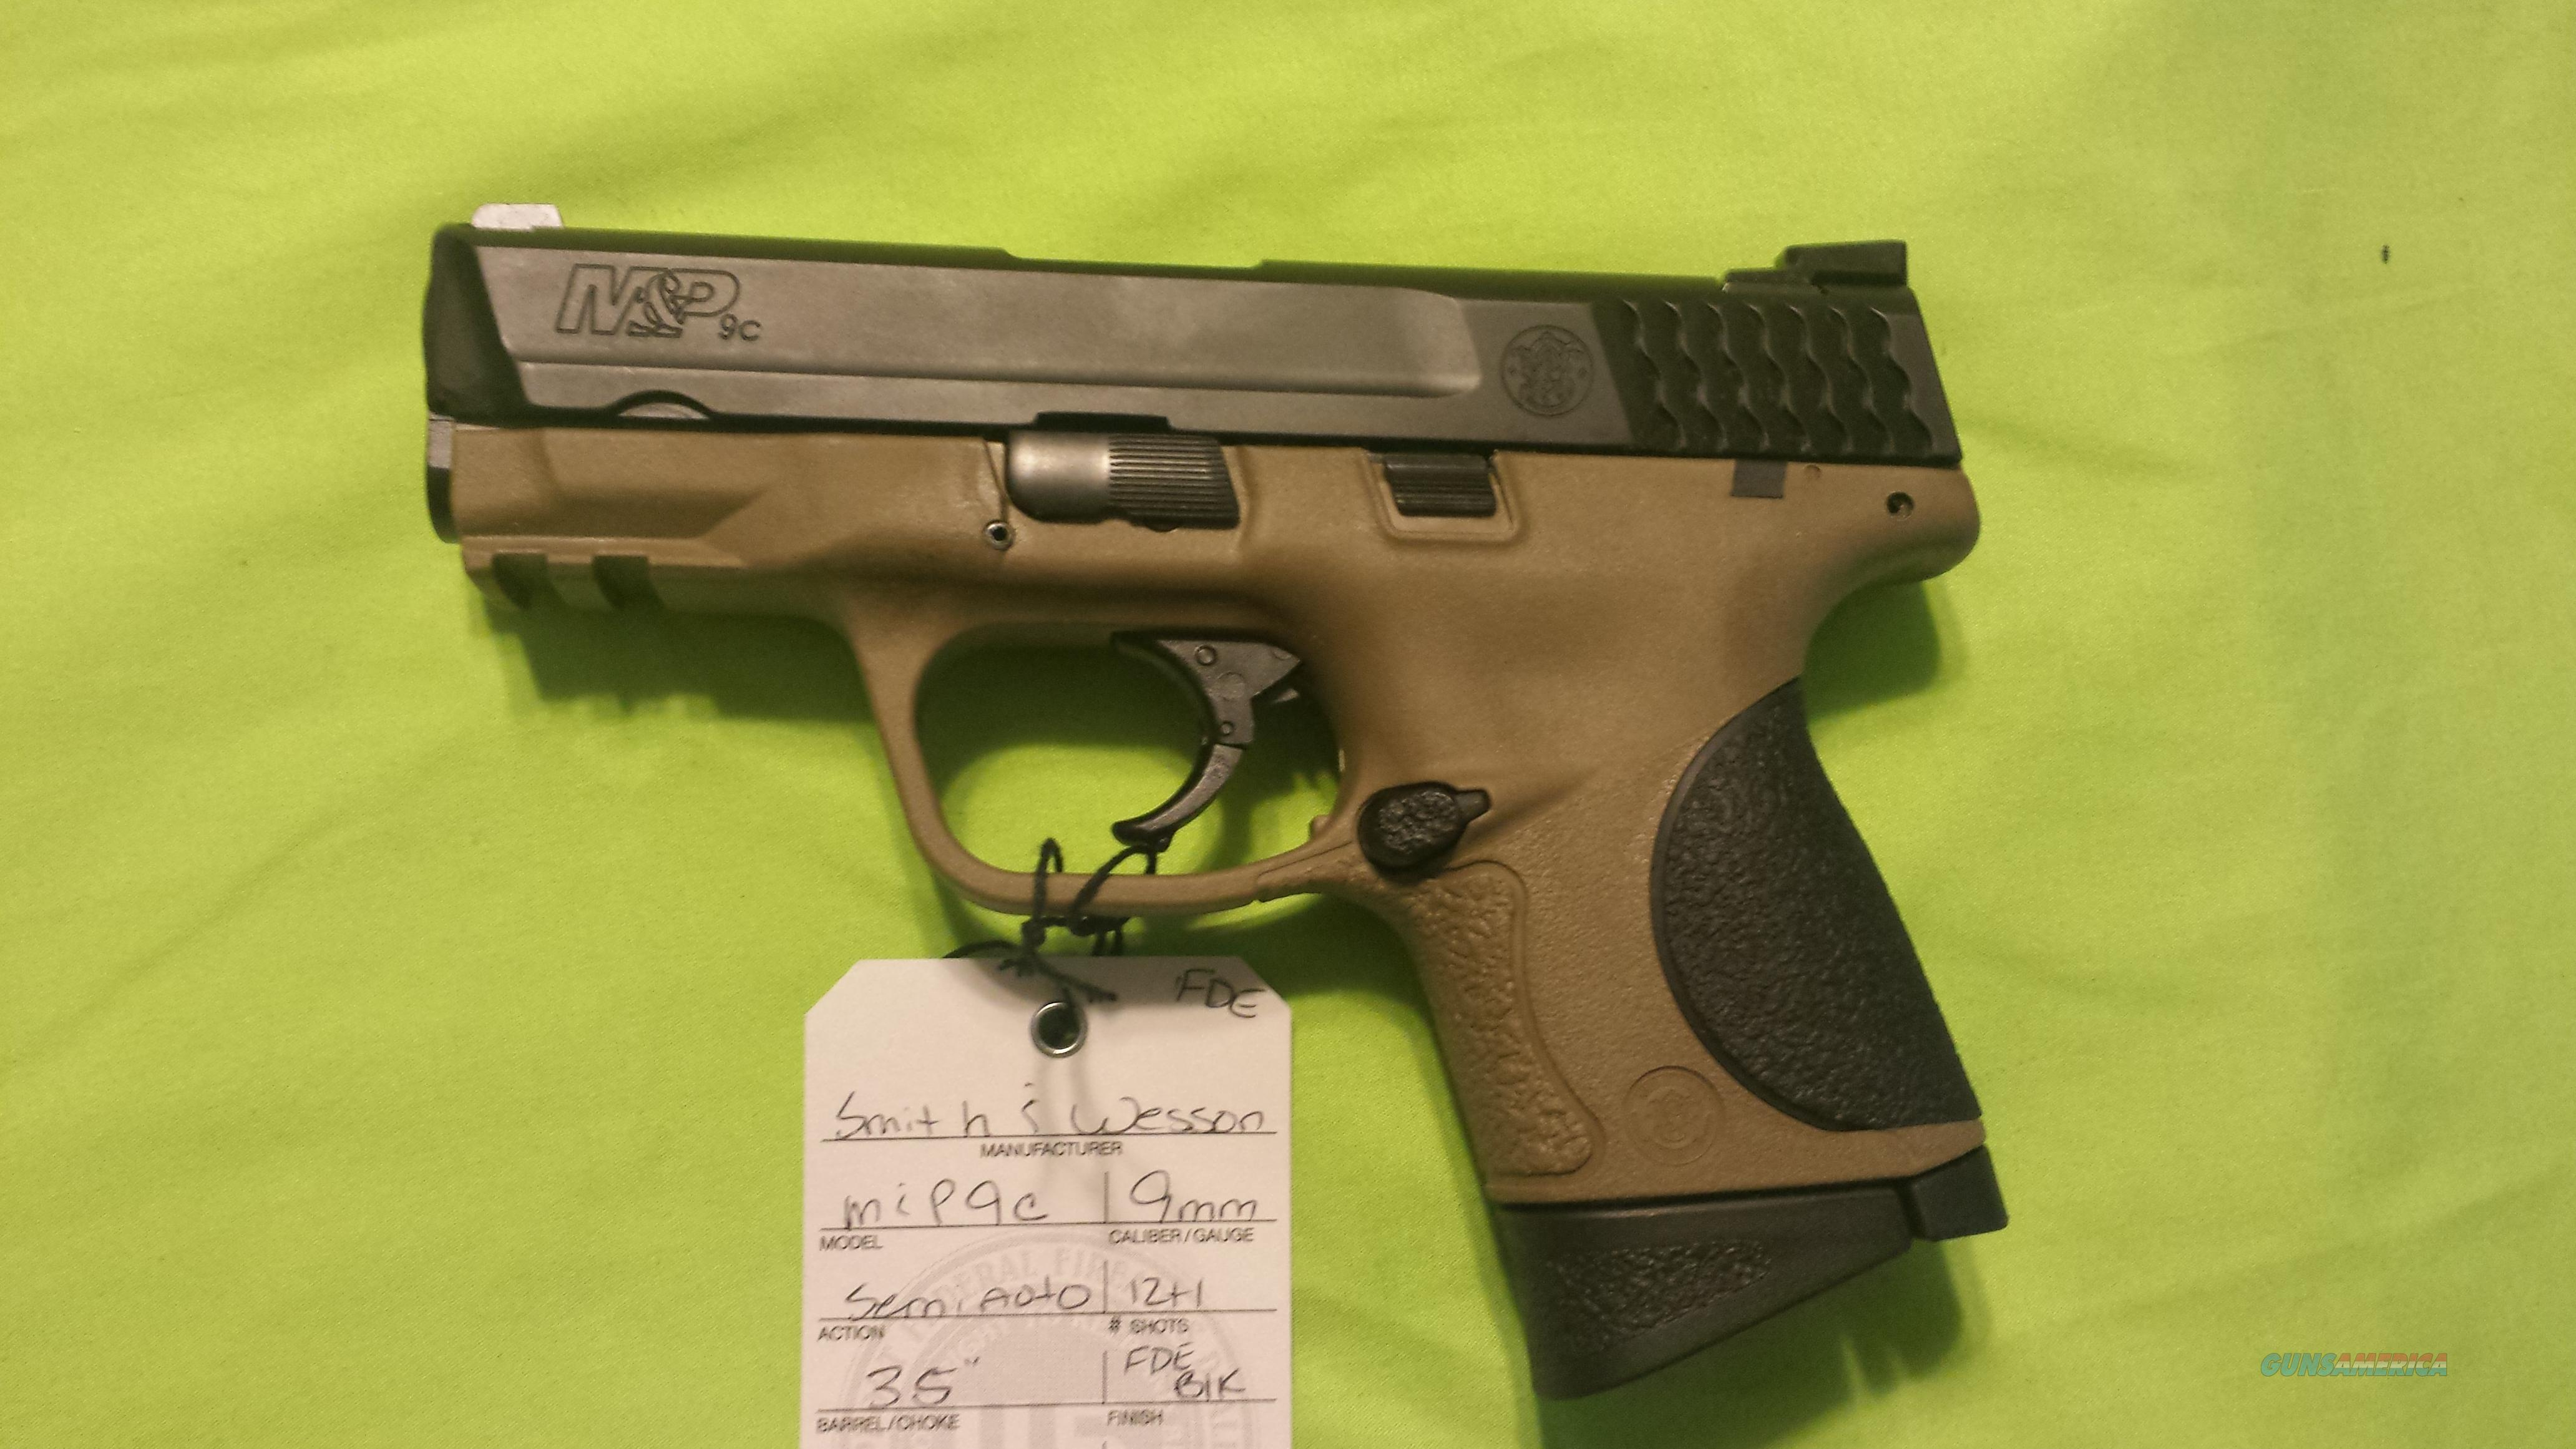 SMITH & WESSON S&W M&P FDE COMPACT 3.5 9C 9 C 12RD  Guns > Pistols > Smith & Wesson Pistols - Autos > Polymer Frame